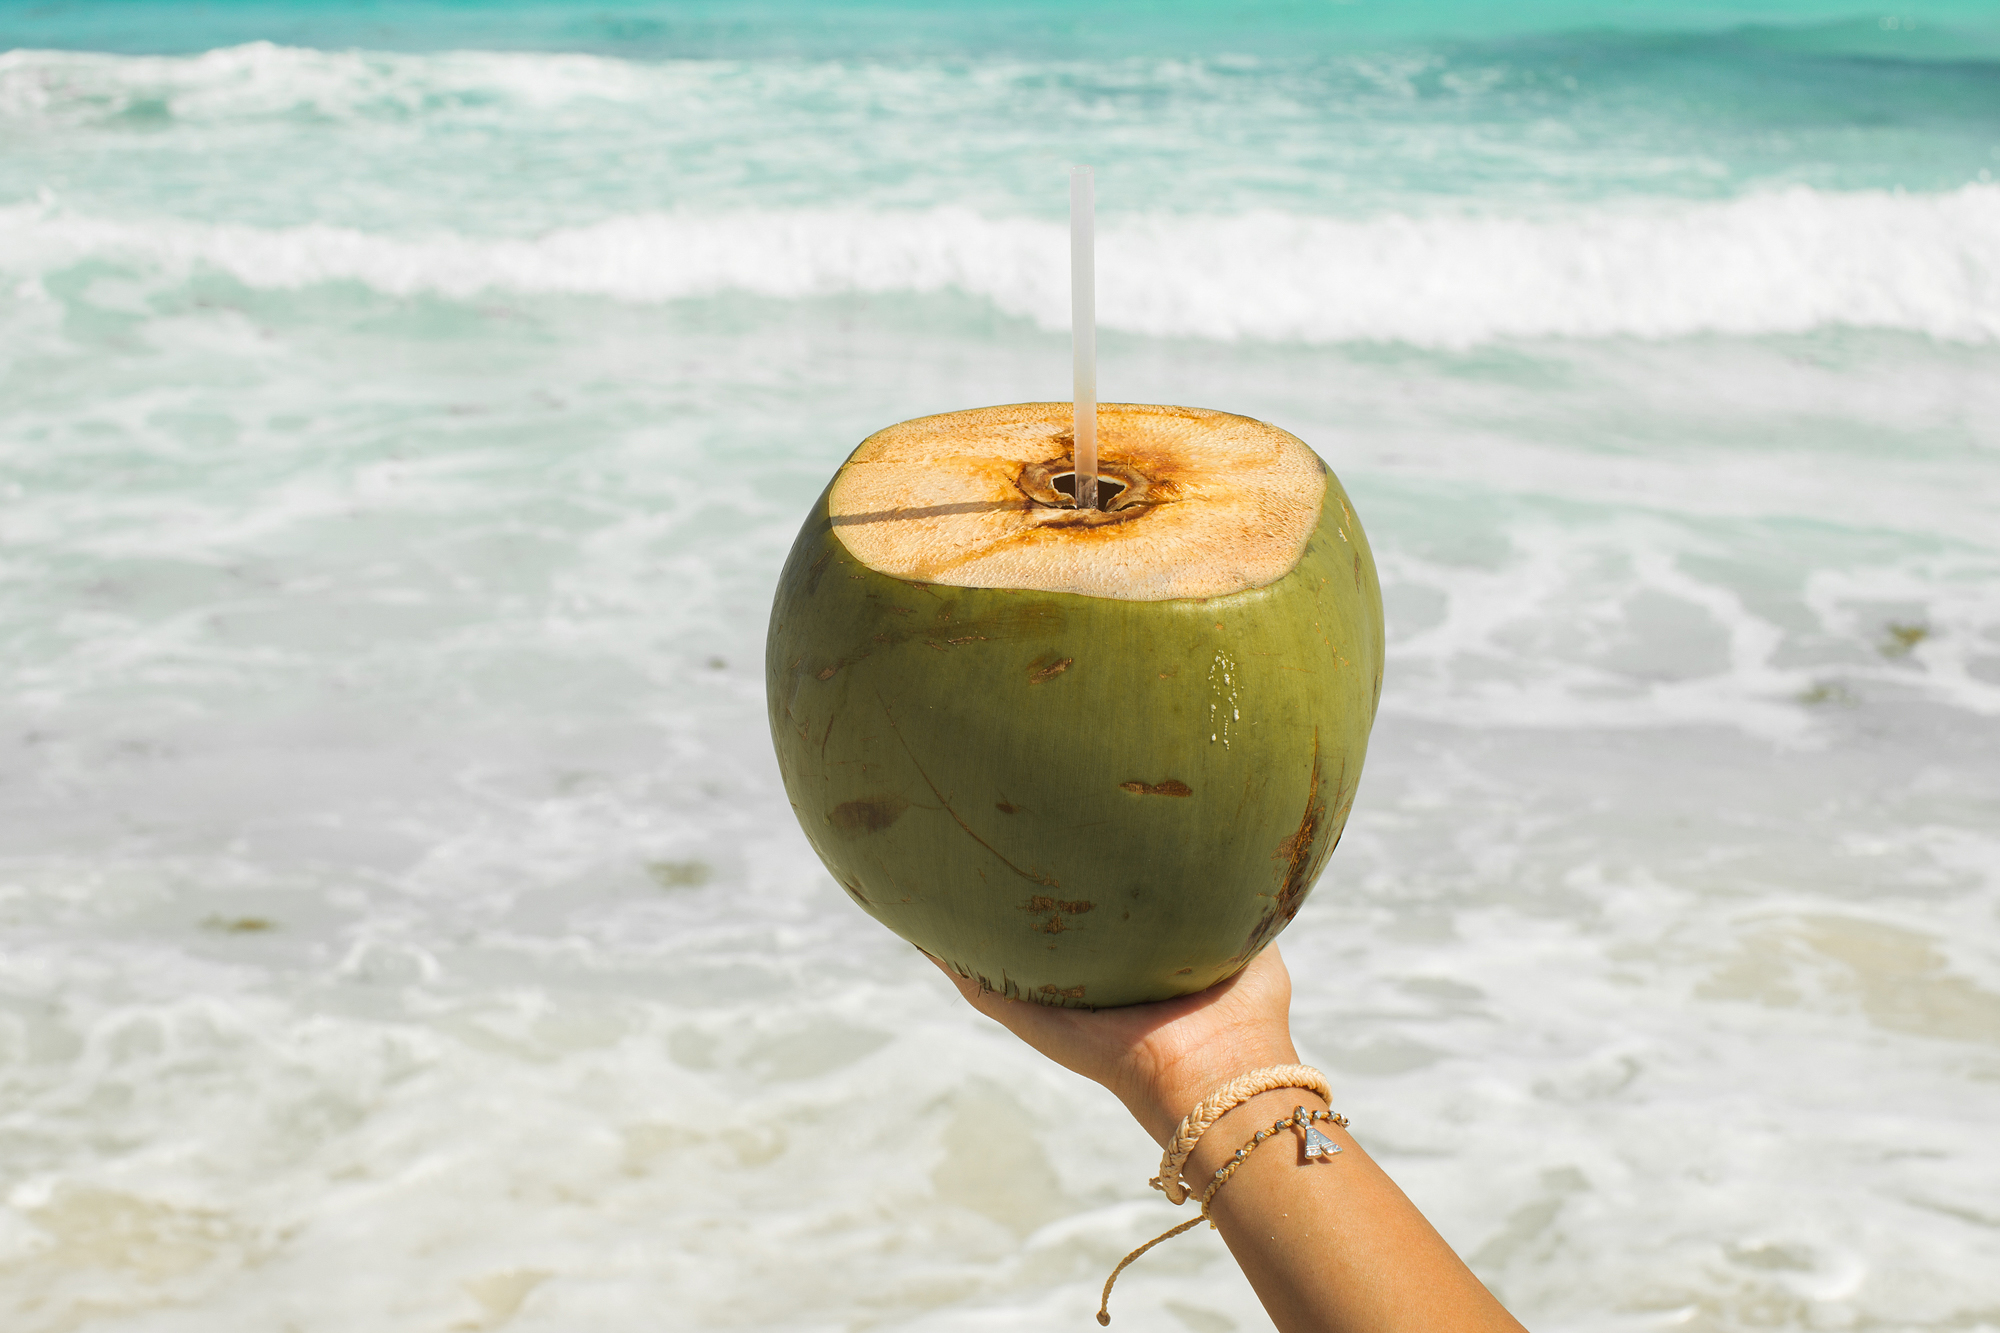 Coconuts on beaches